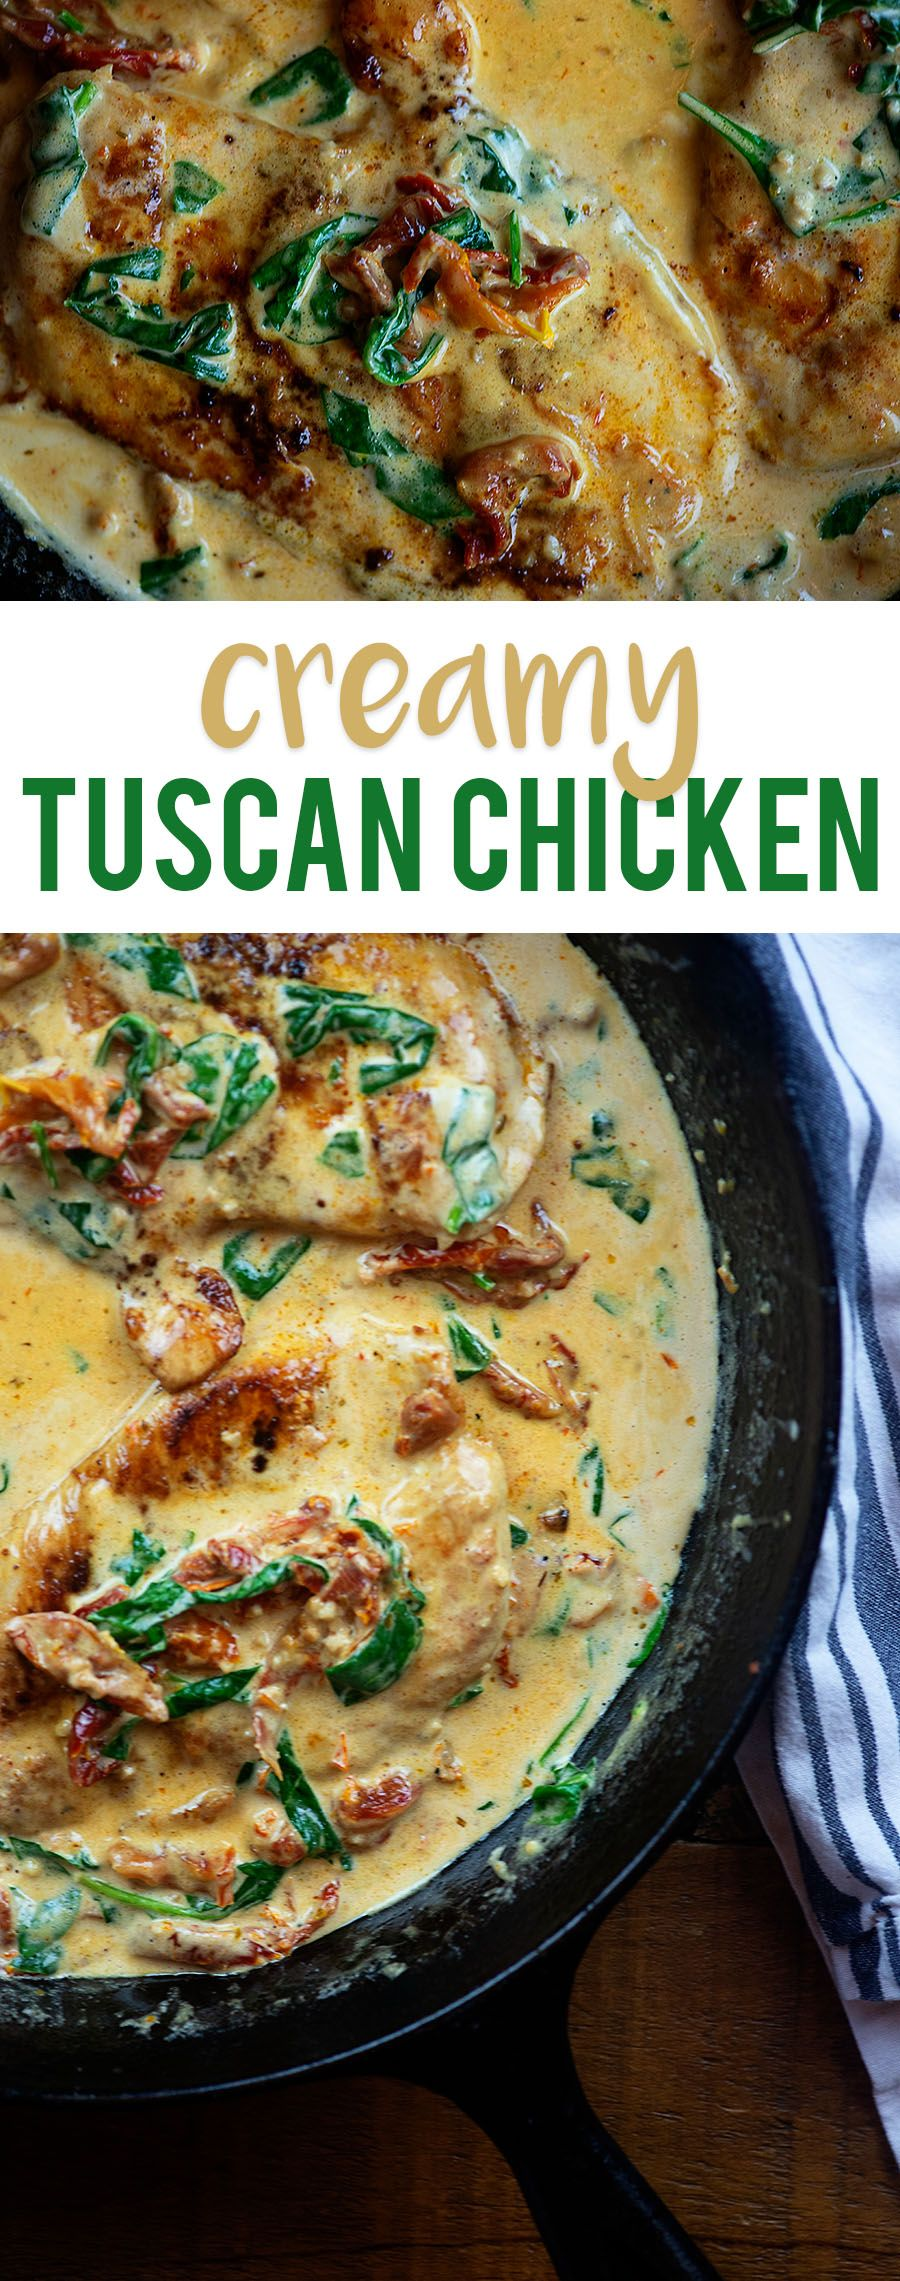 Creamy Tuscan Chicken! Low carb chicken in a creamy sauce with sun-dried tomatoes and spinach!